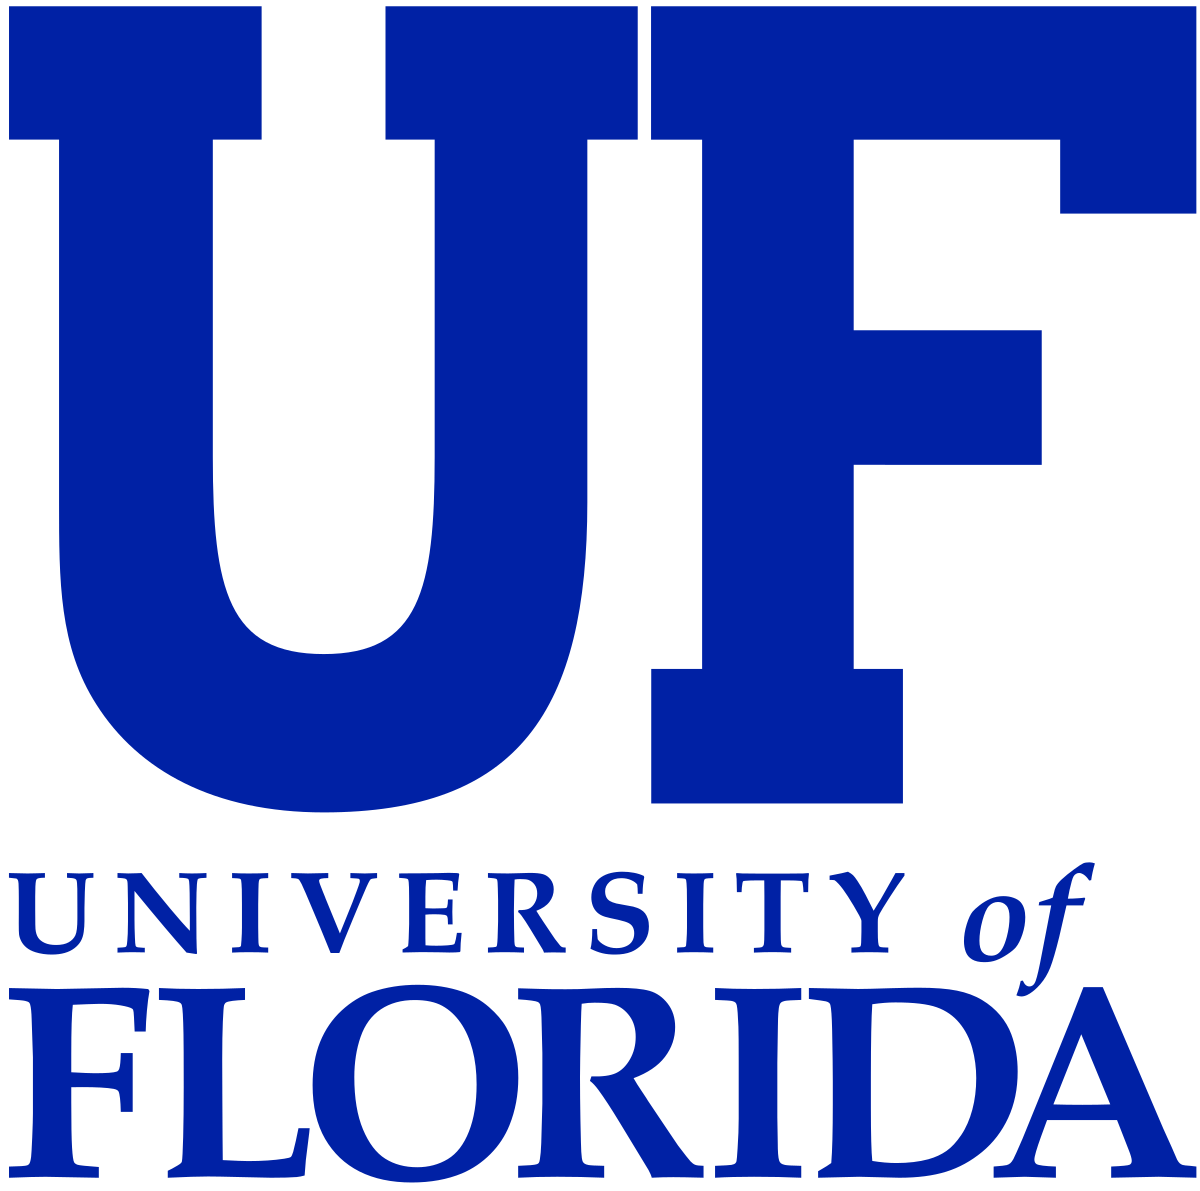 University of florida gators logo png. Athletic association wikipedia